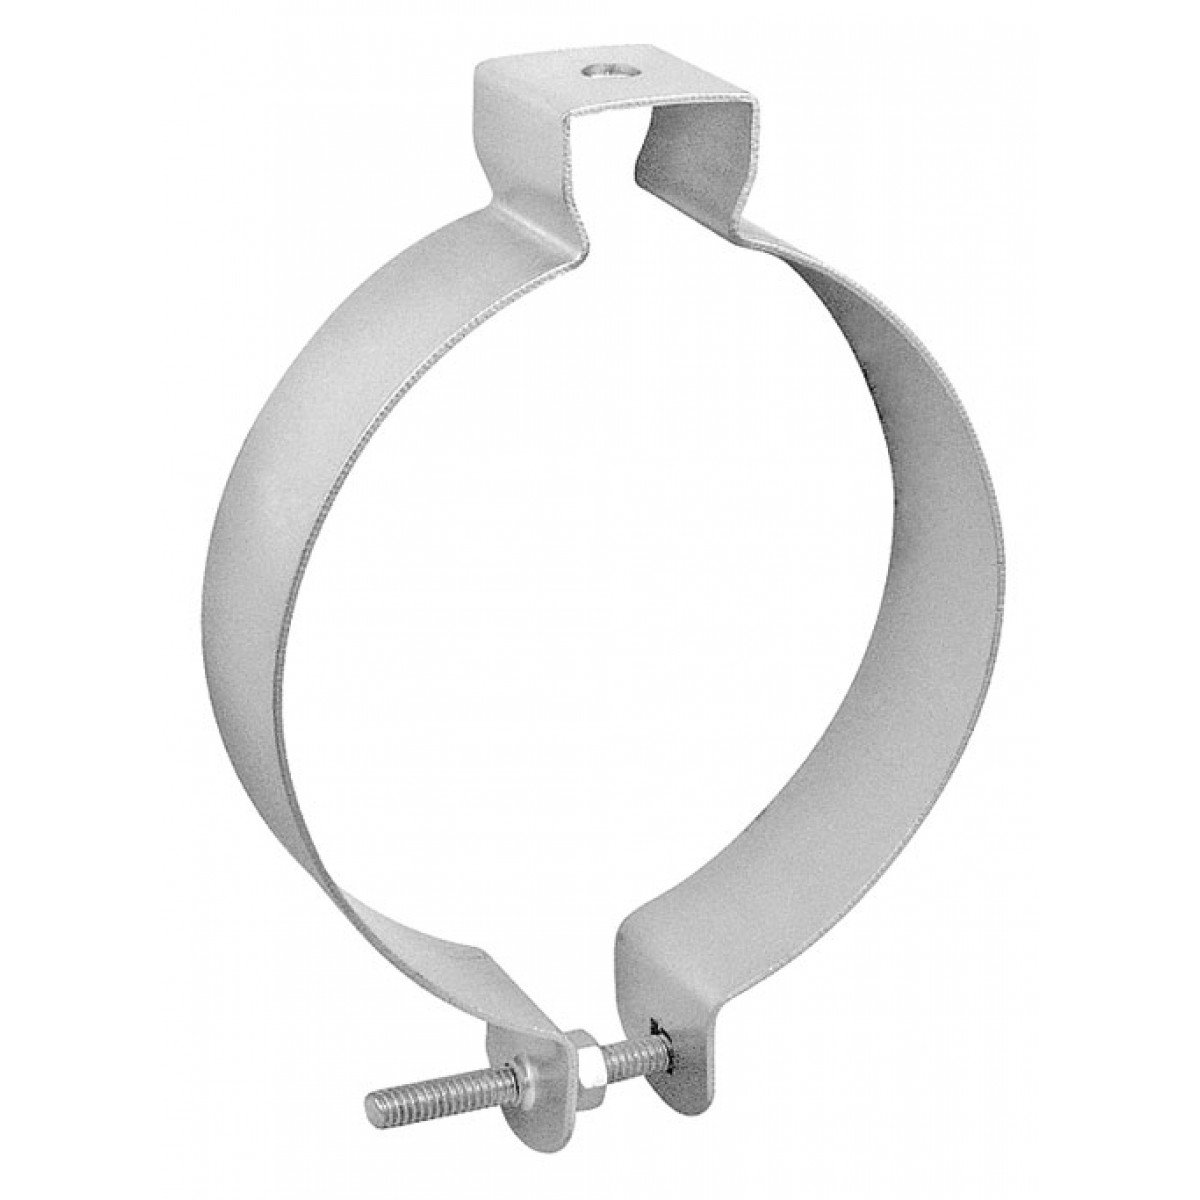 2 Pcs, Stainless Steel Conduit Hanger, 1-1/4 In. Emt, 316Ss Used In Both Wet & Dry Locations to Support Runs of 1-1/4In Rigid/Imc & 1-1/4In Emt Conduits From Ceilings & Walls